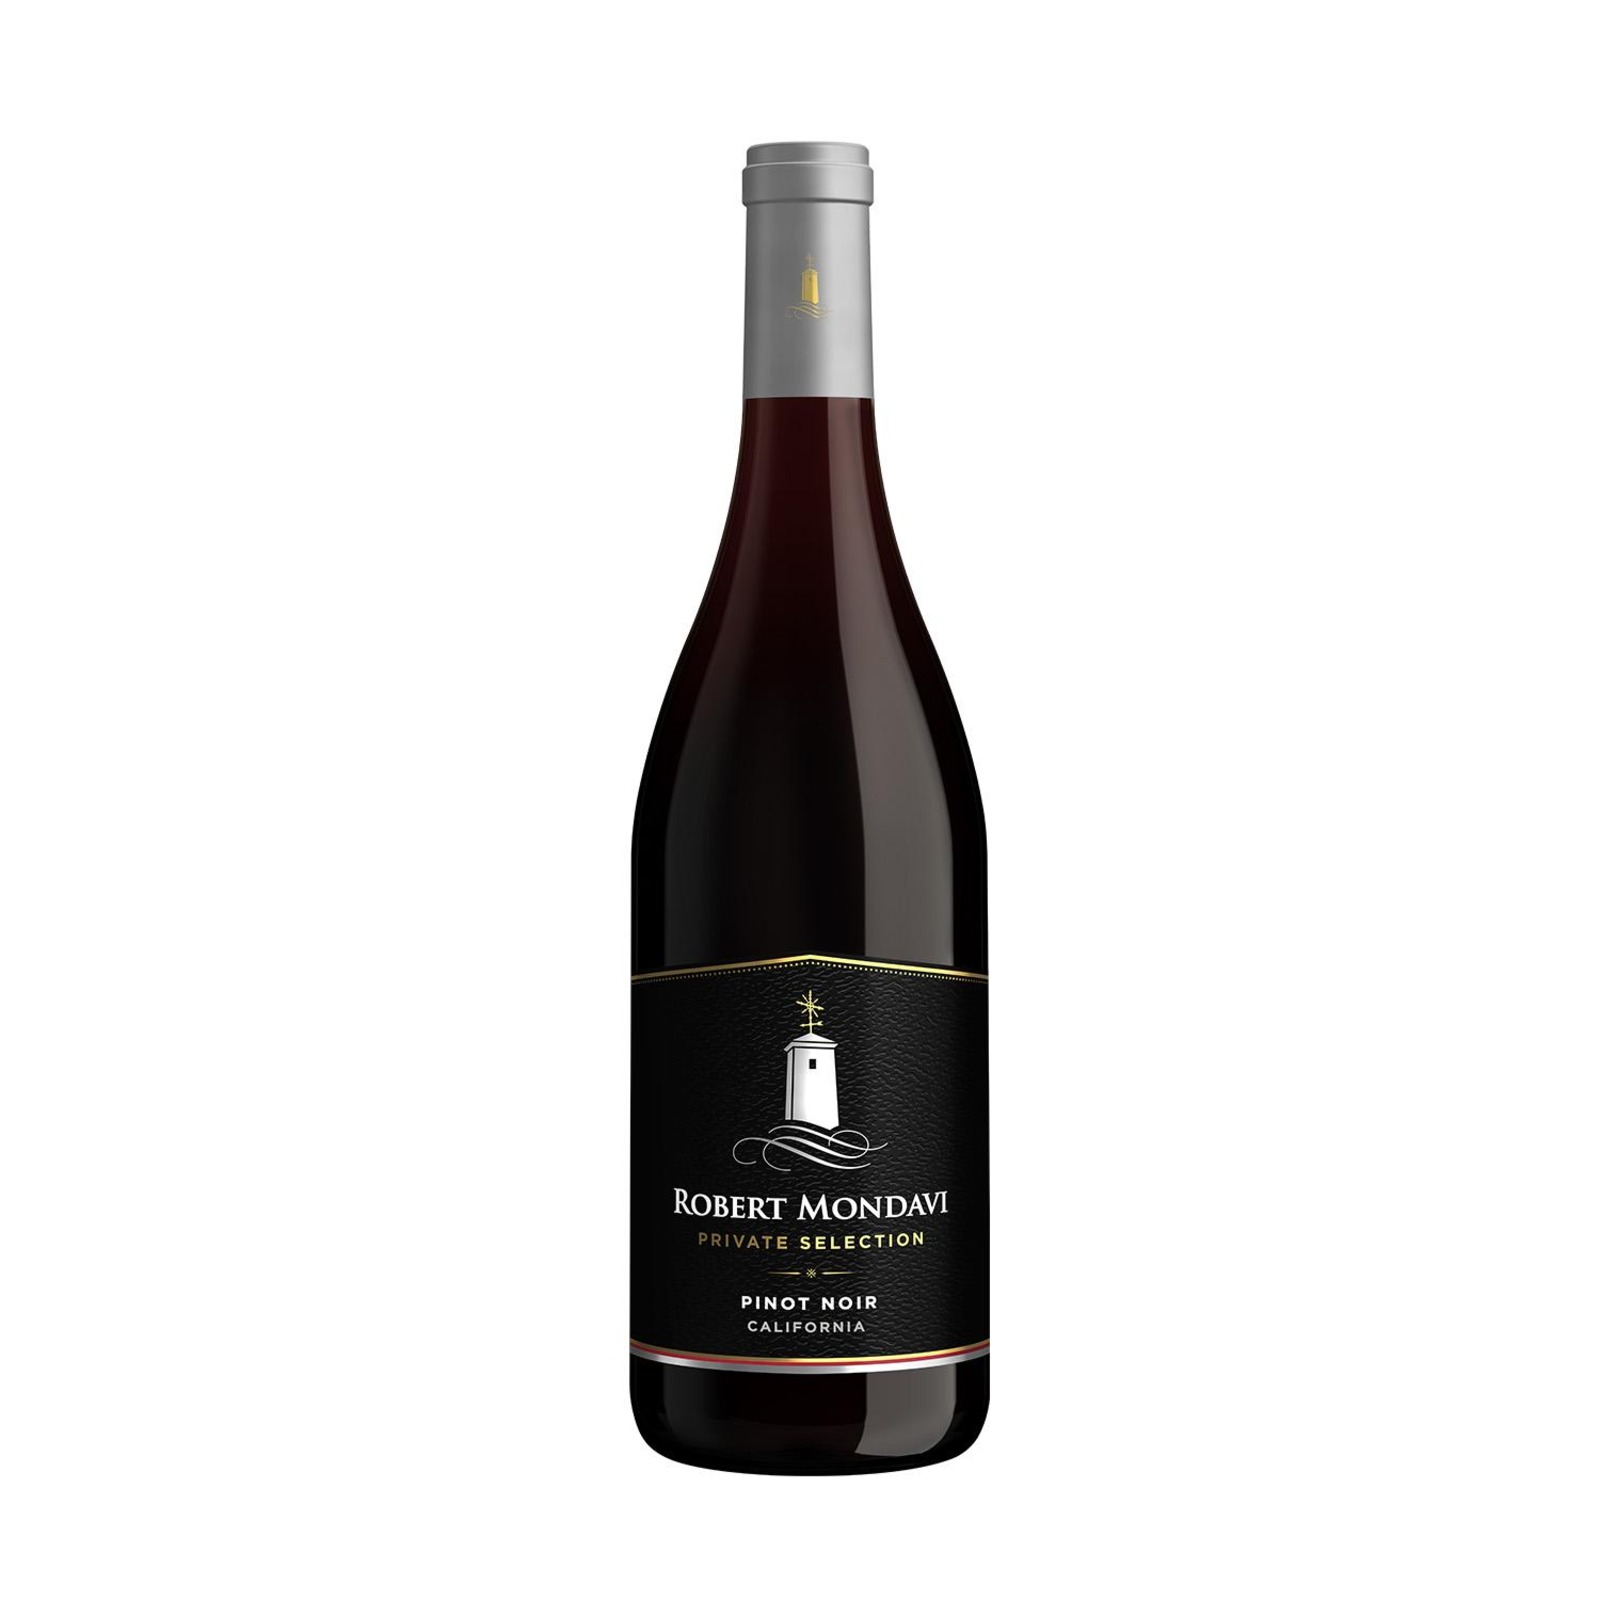 Robert Mondavi Private Selection Pinot Noir-By Culina